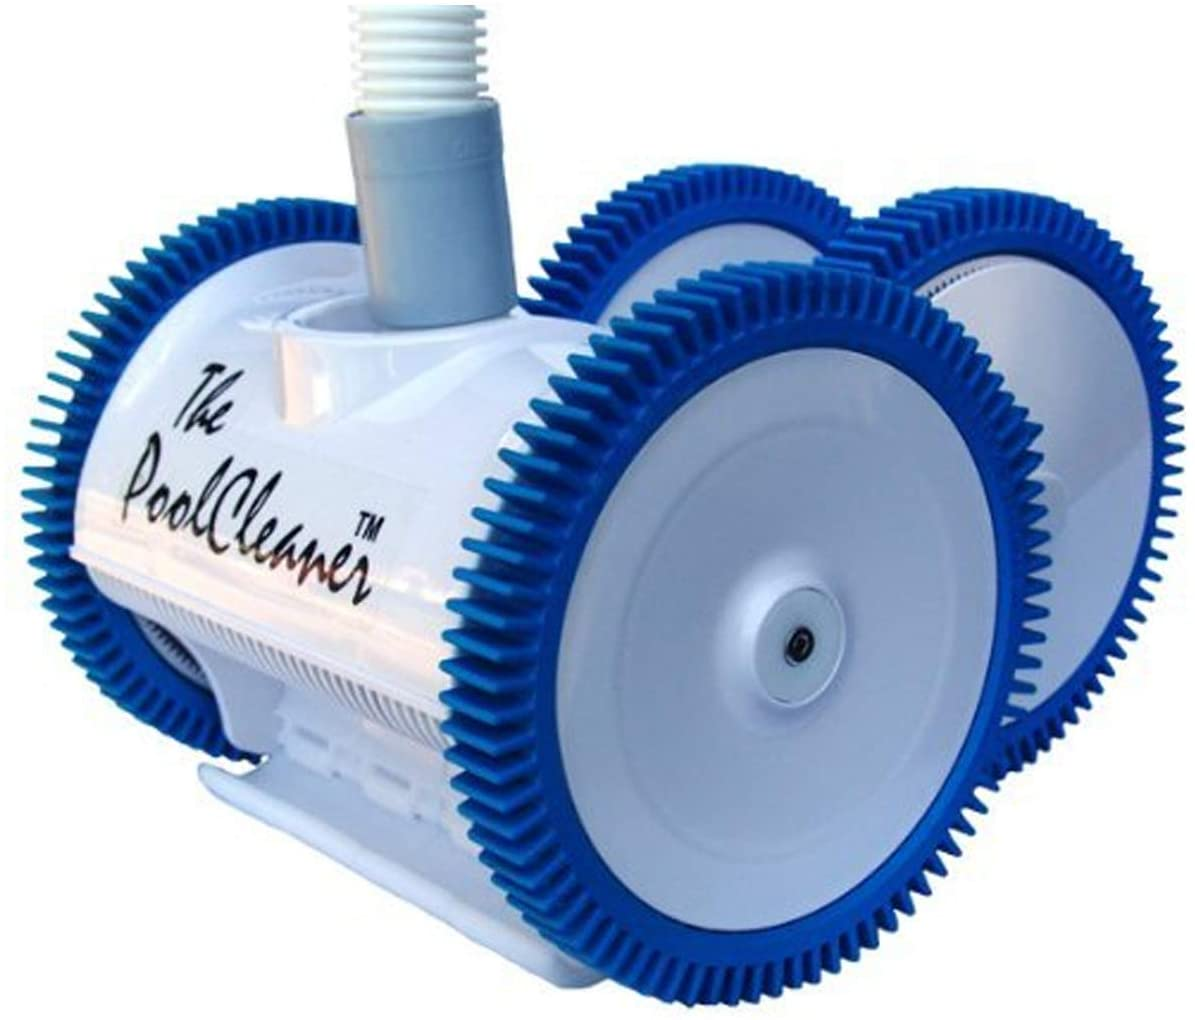 a light blue blue inground vacuum with dark blue wheels